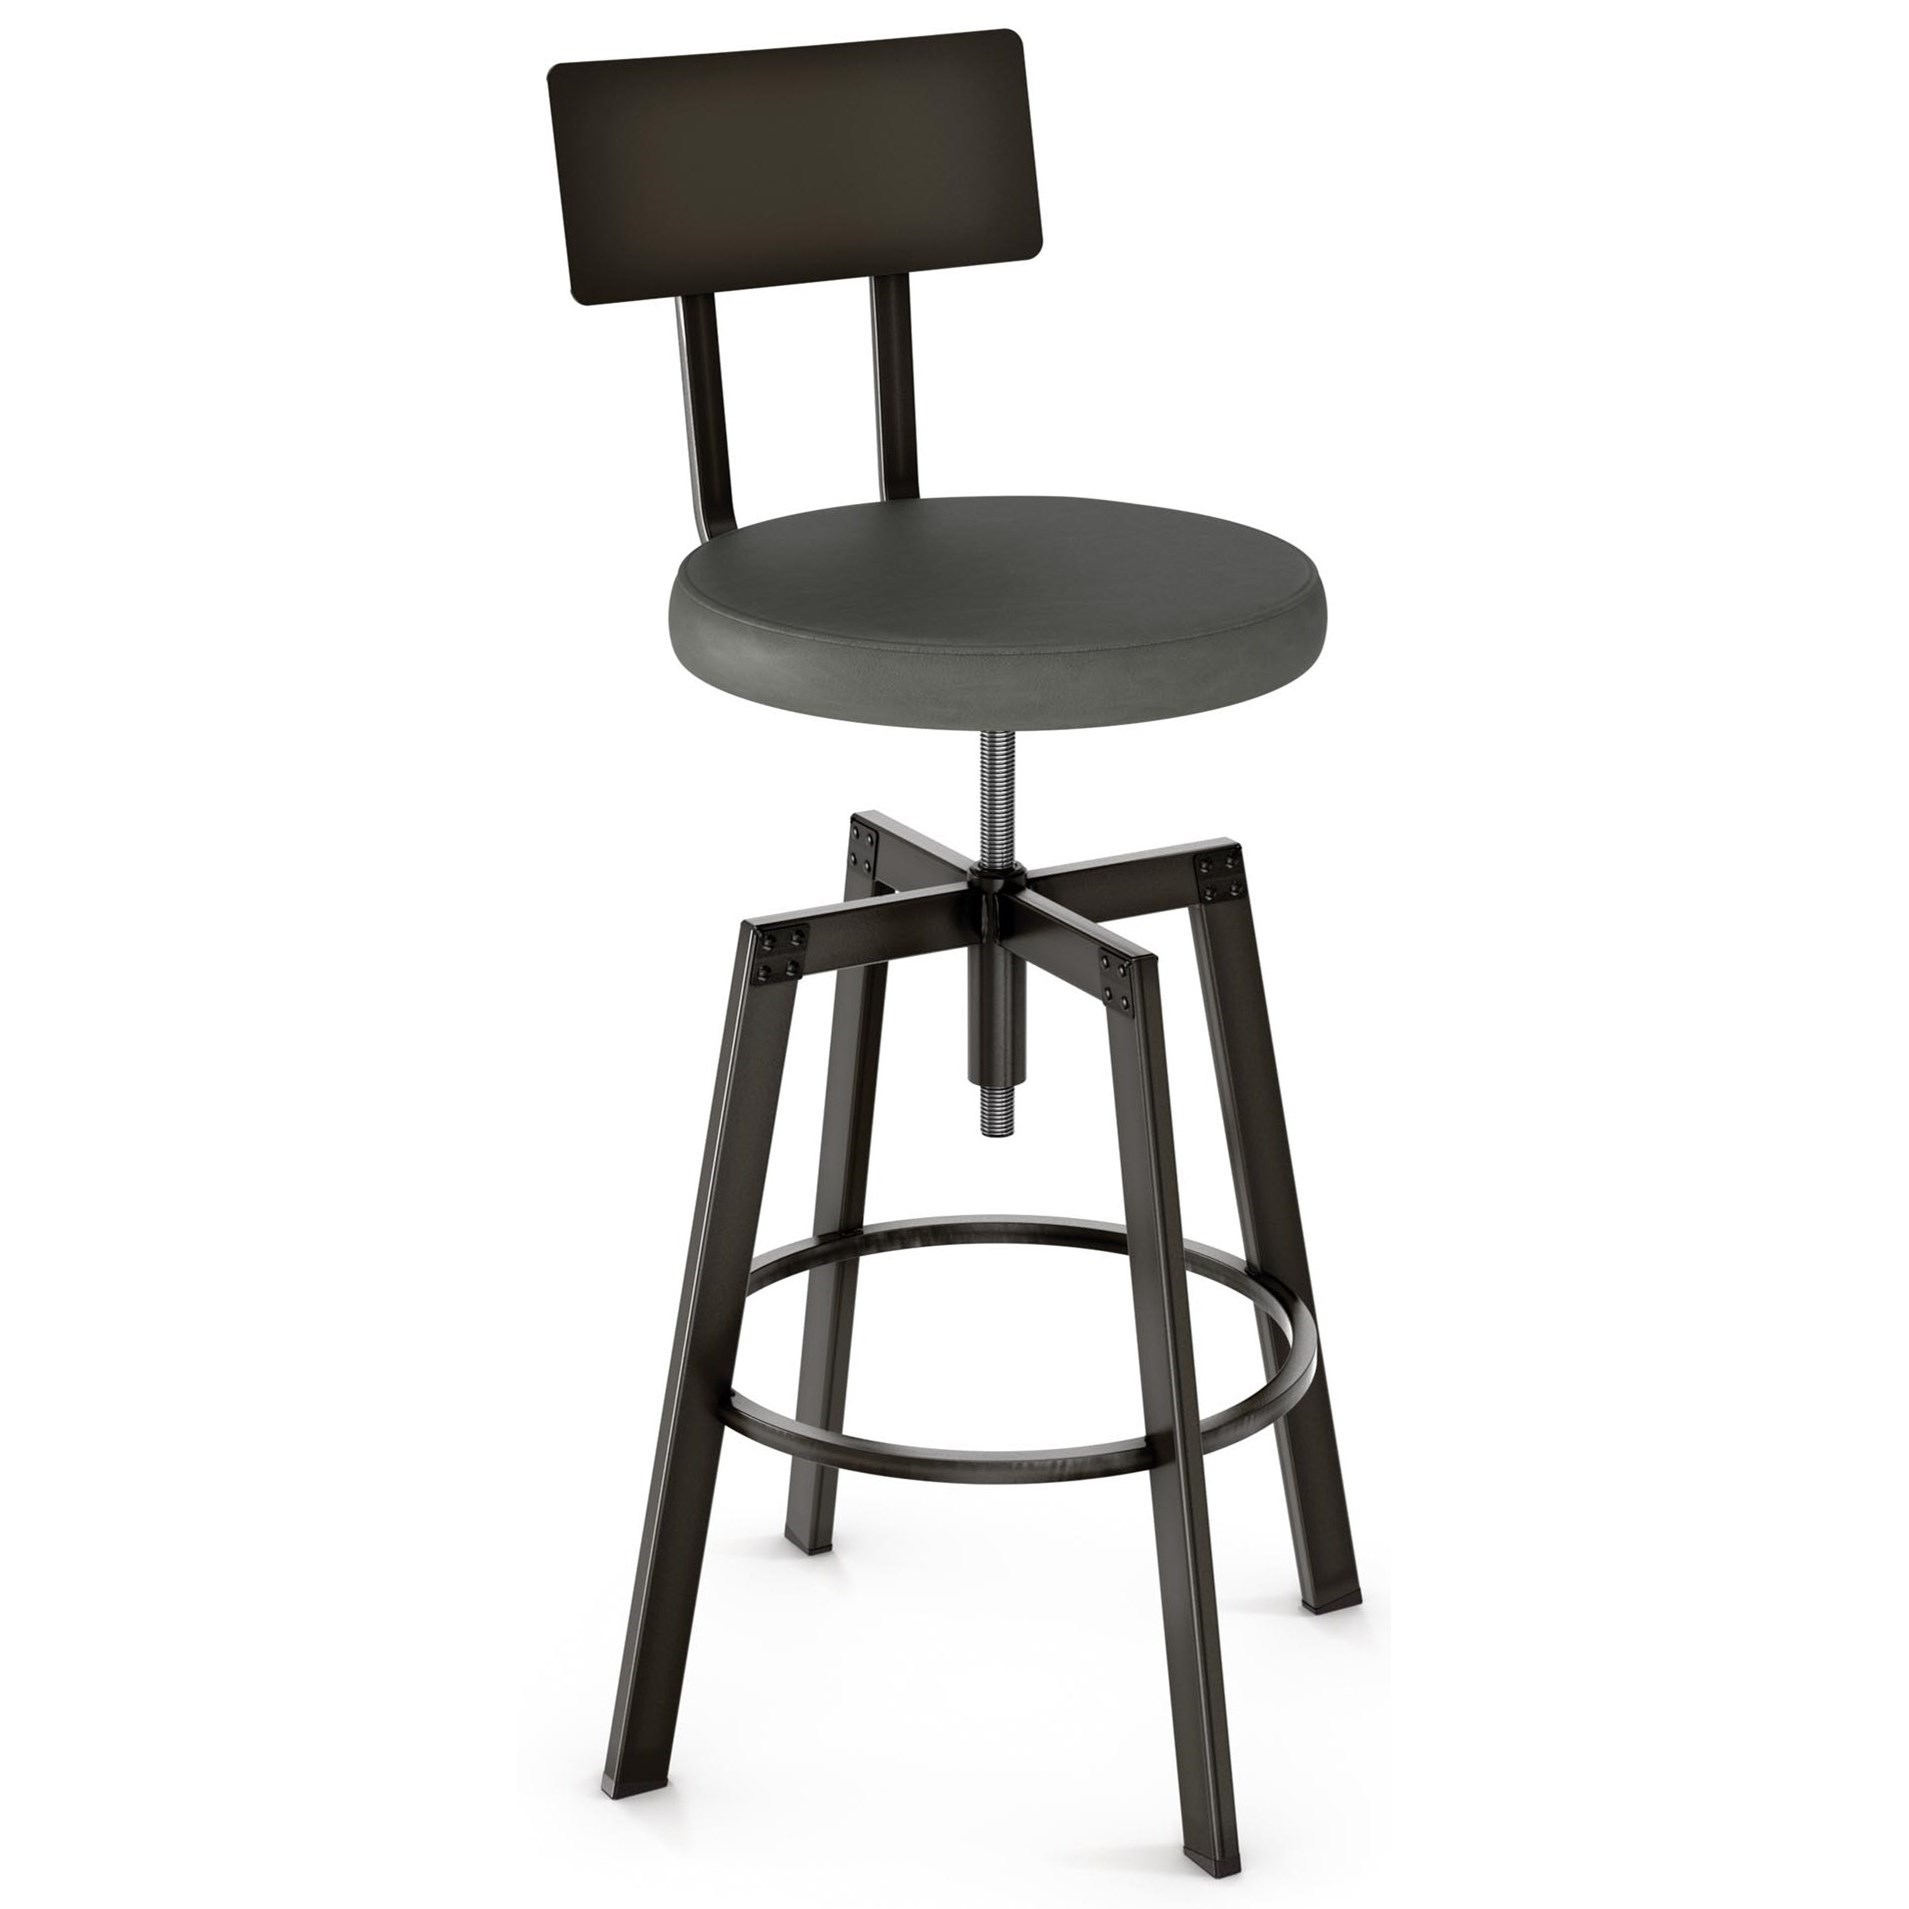 Industrial Architect Screw Stool with Cushion Seat by Amisco at Dinette Depot